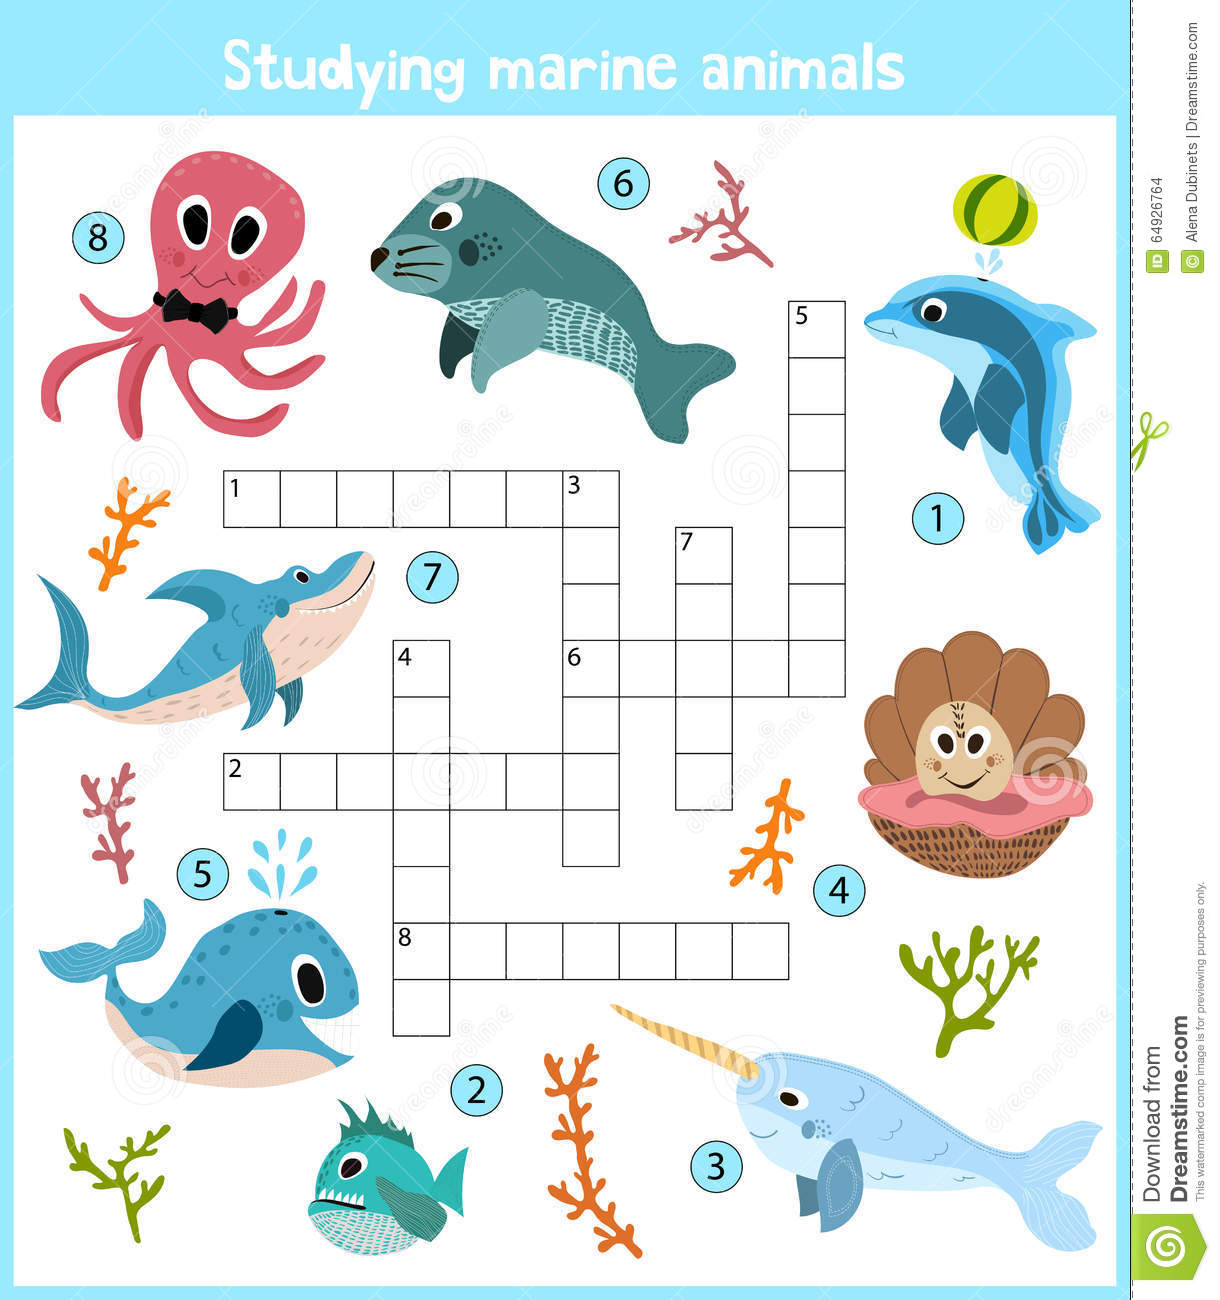 A Colorful Children S Cartoon Crossword Education Game For Children On The Theme Of Sea Animals